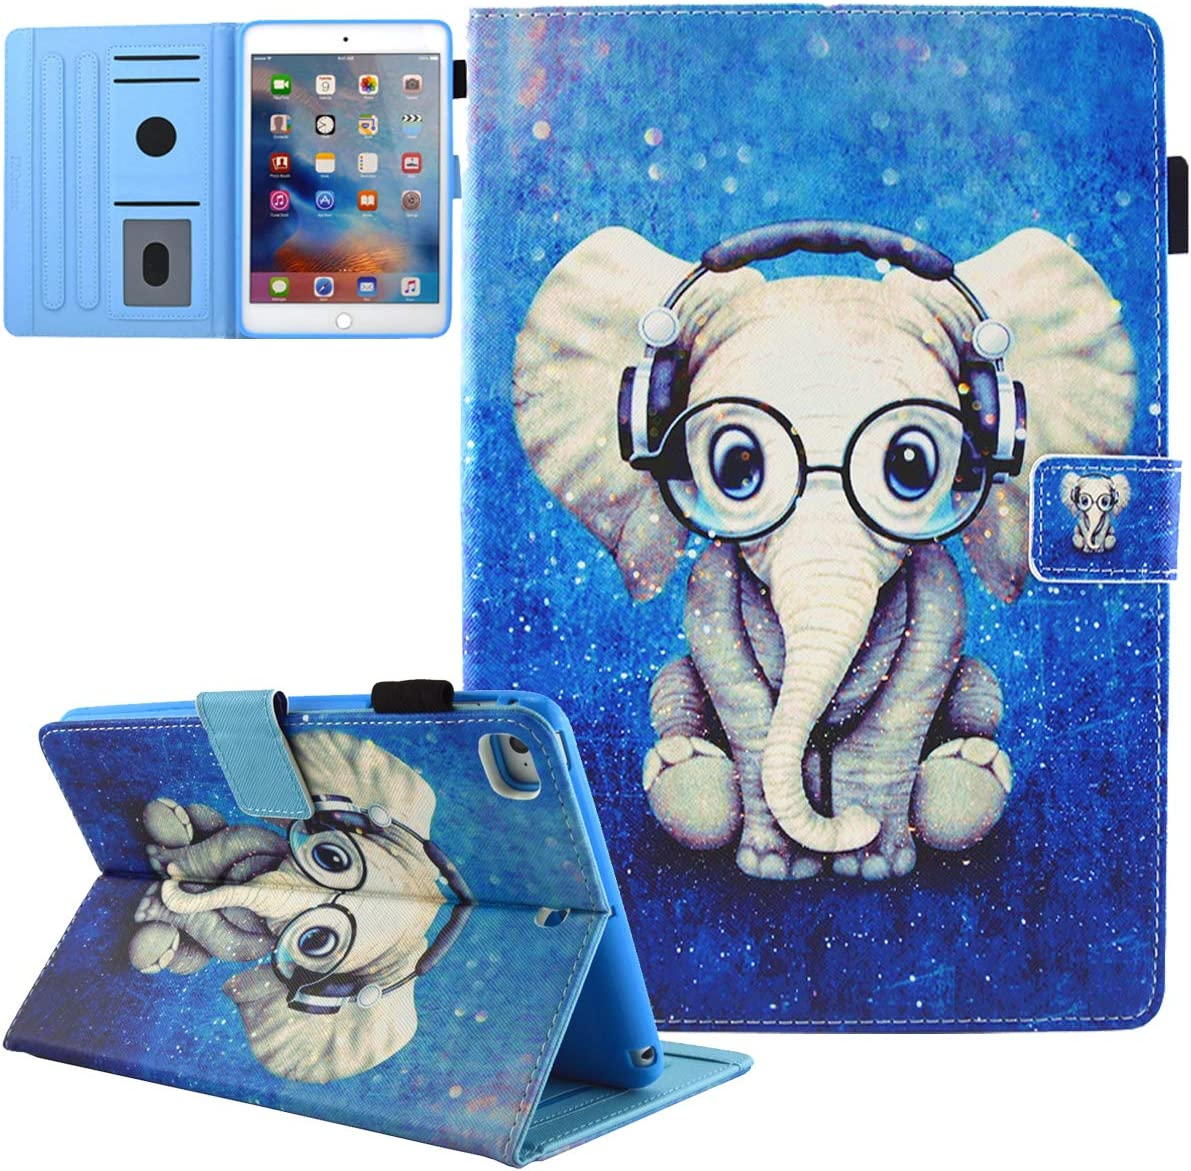 JZCreater Case for iPad 9.7 2018 2017 / iPad Air 2 / iPad Air Case - Flip Stand PU Leather Wallet Case, Auto Sleep/Wake Function Smart Cover, Elephant